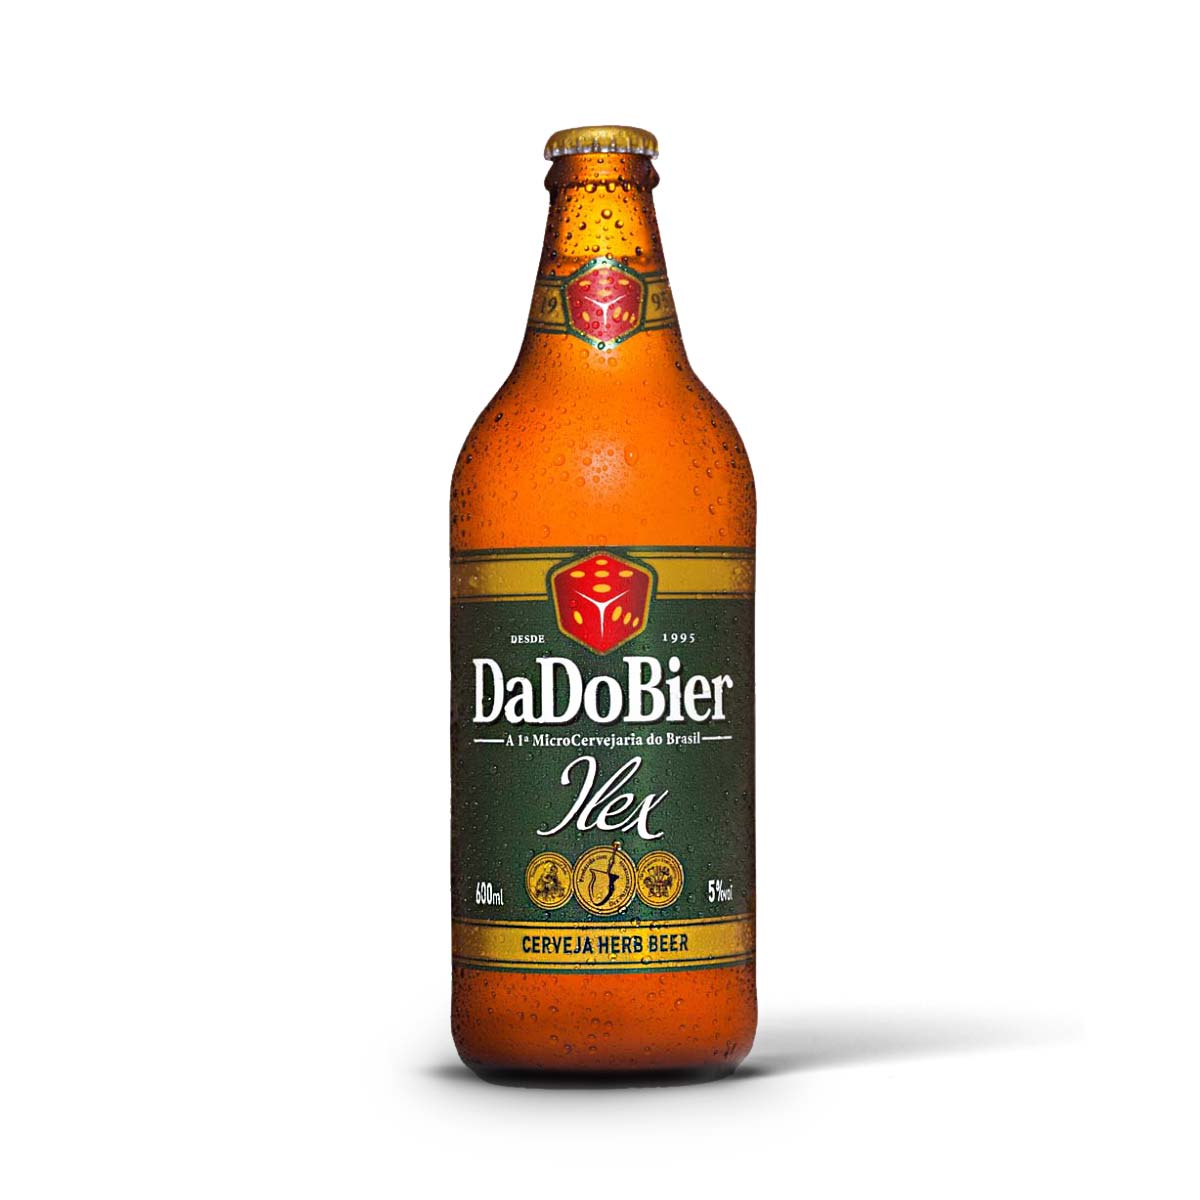 Dado Bier Ilex Herb Beer 600ml